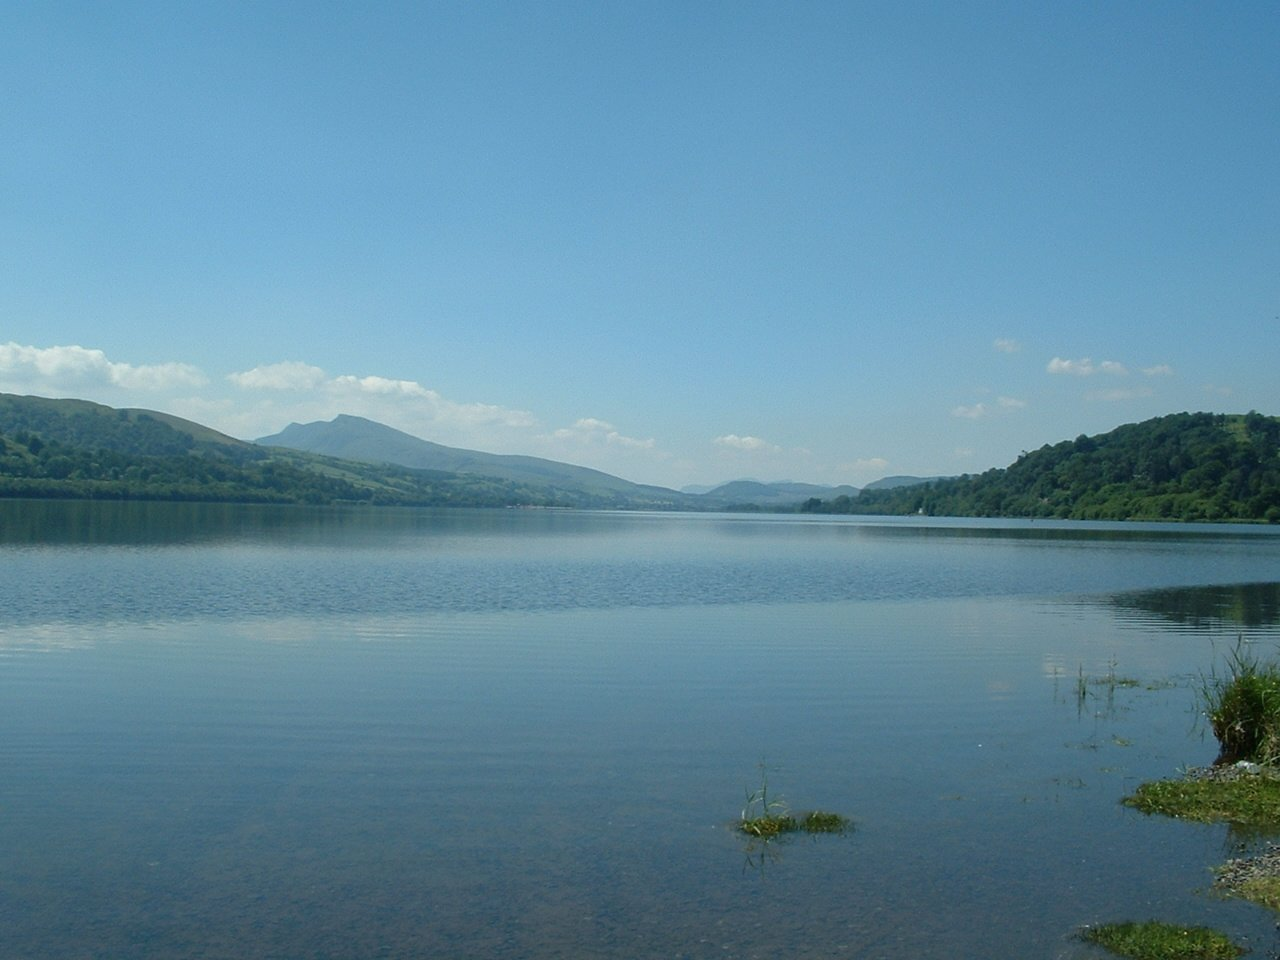 Bala Lake © Mecrothesp https://commons.wikimedia.org/w/index.php?curid=10513322